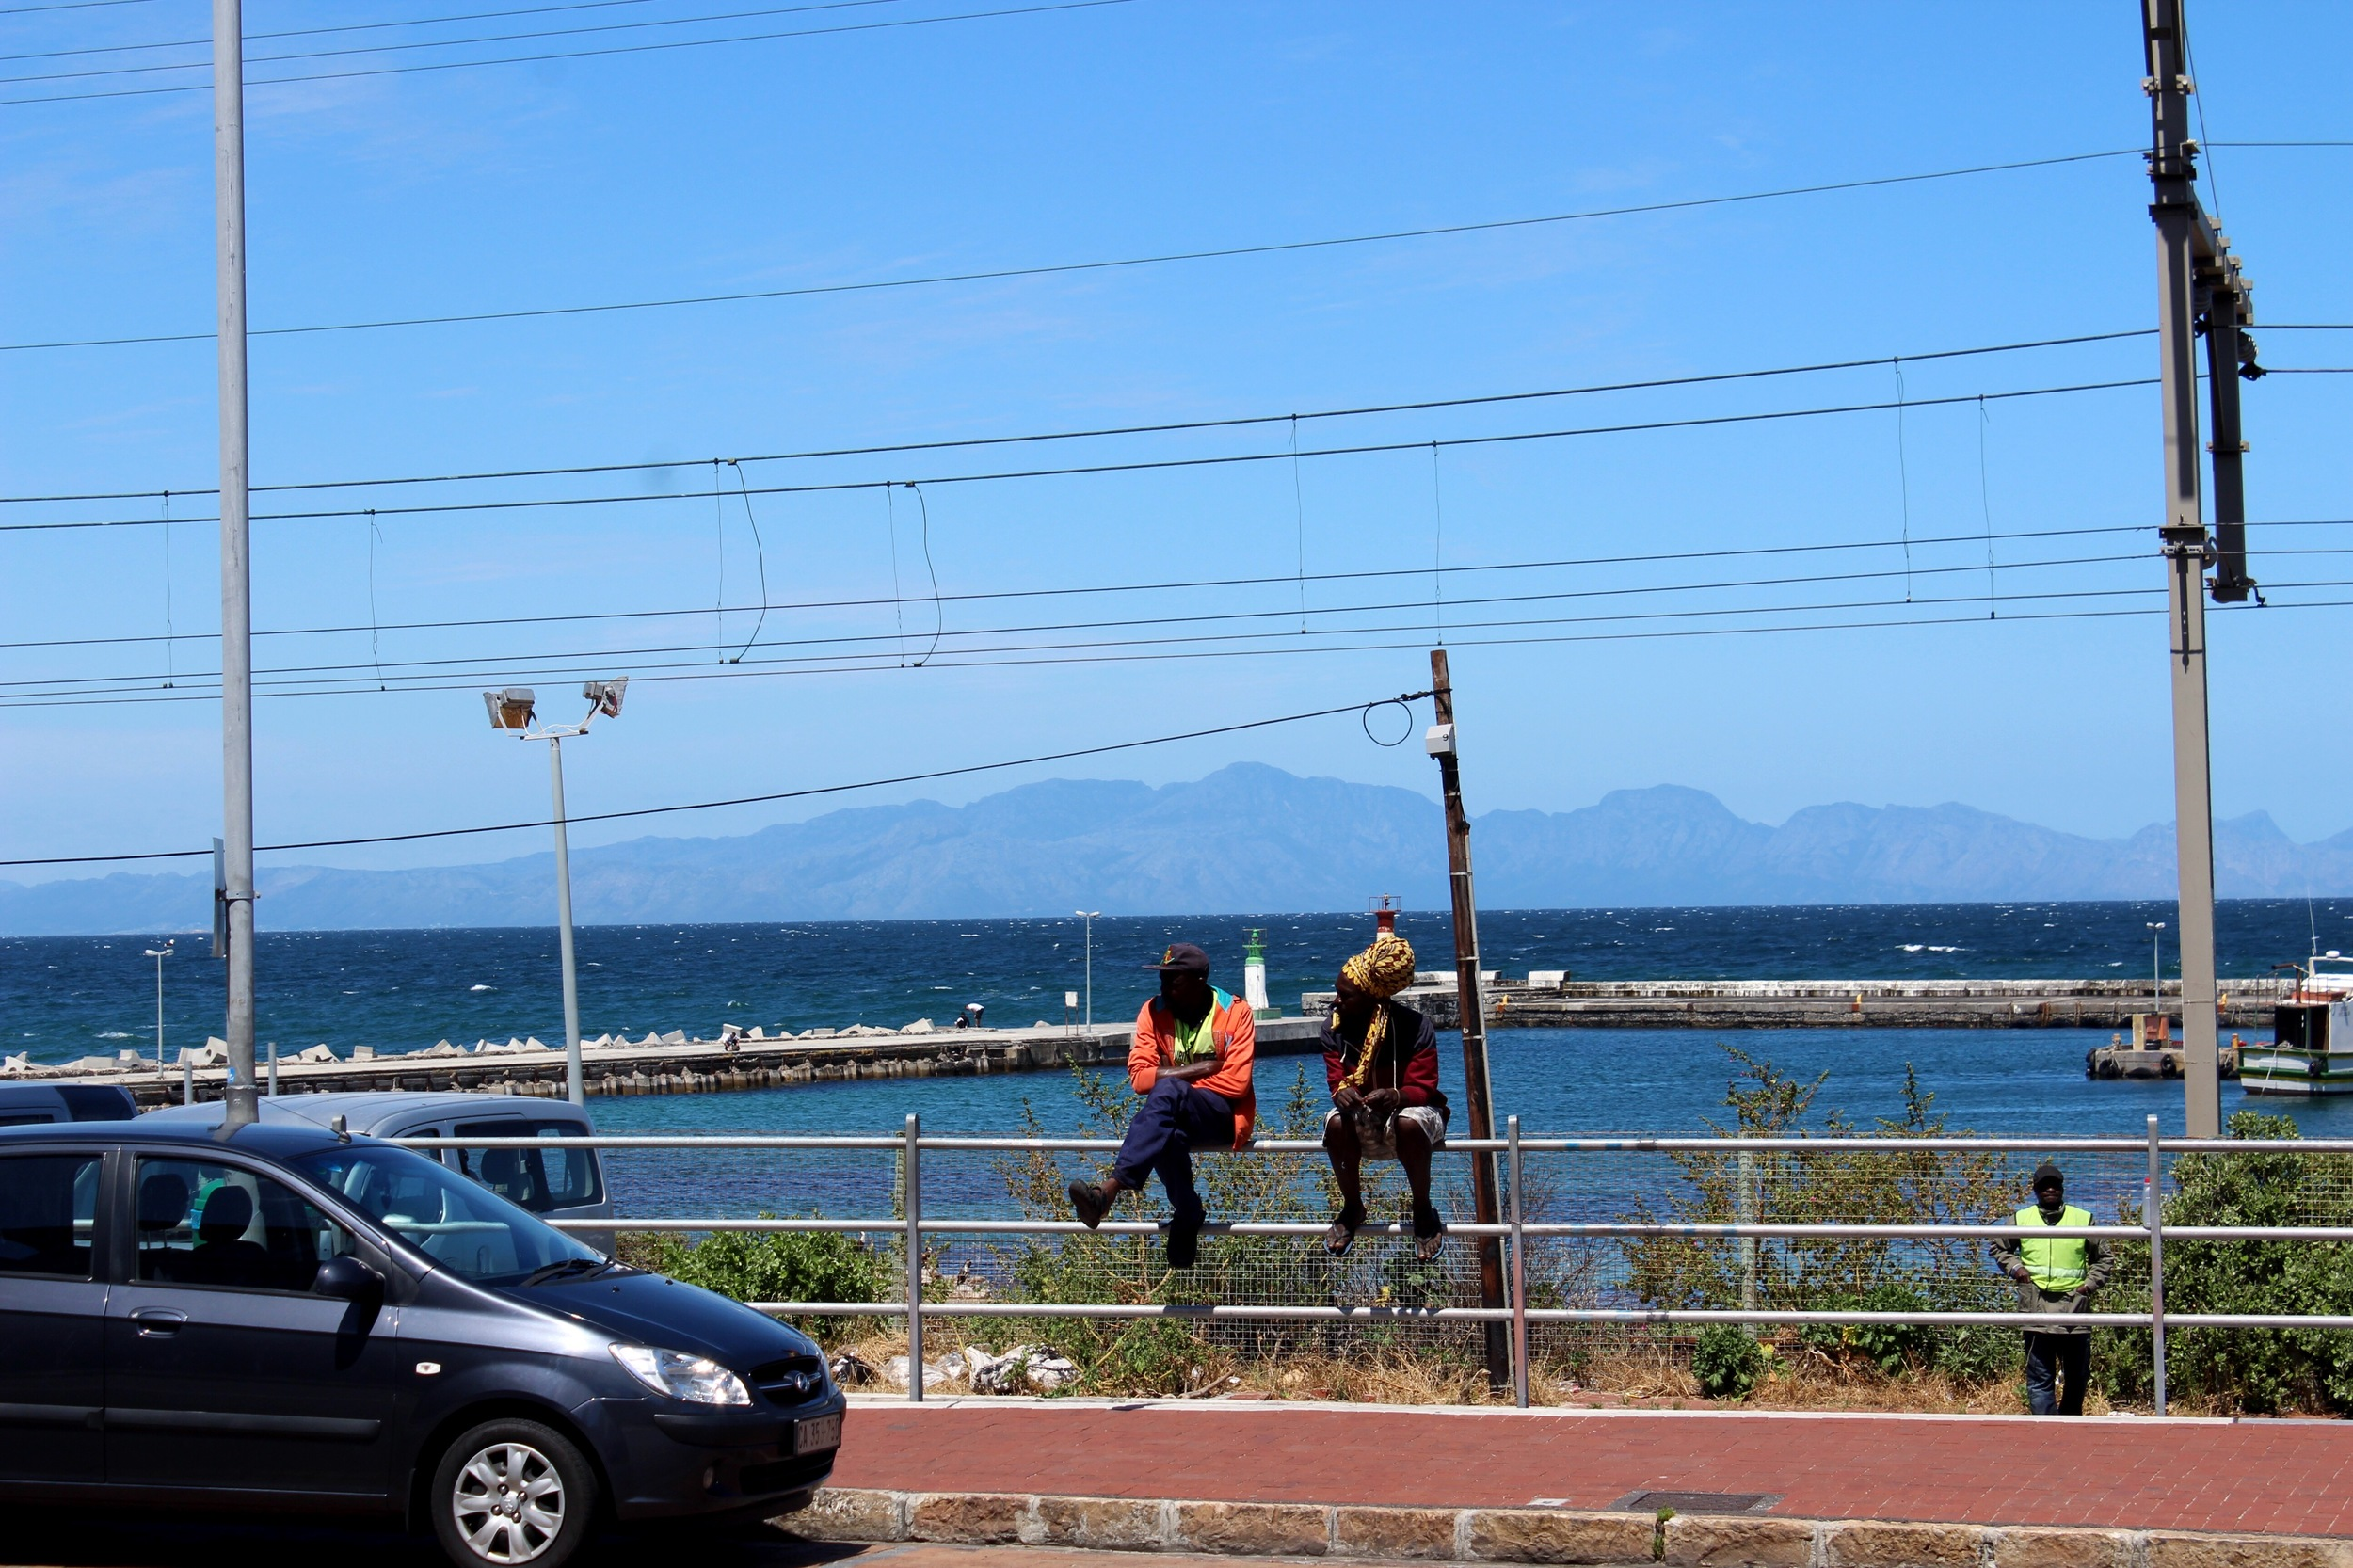 Kalk's Bay, South Africa